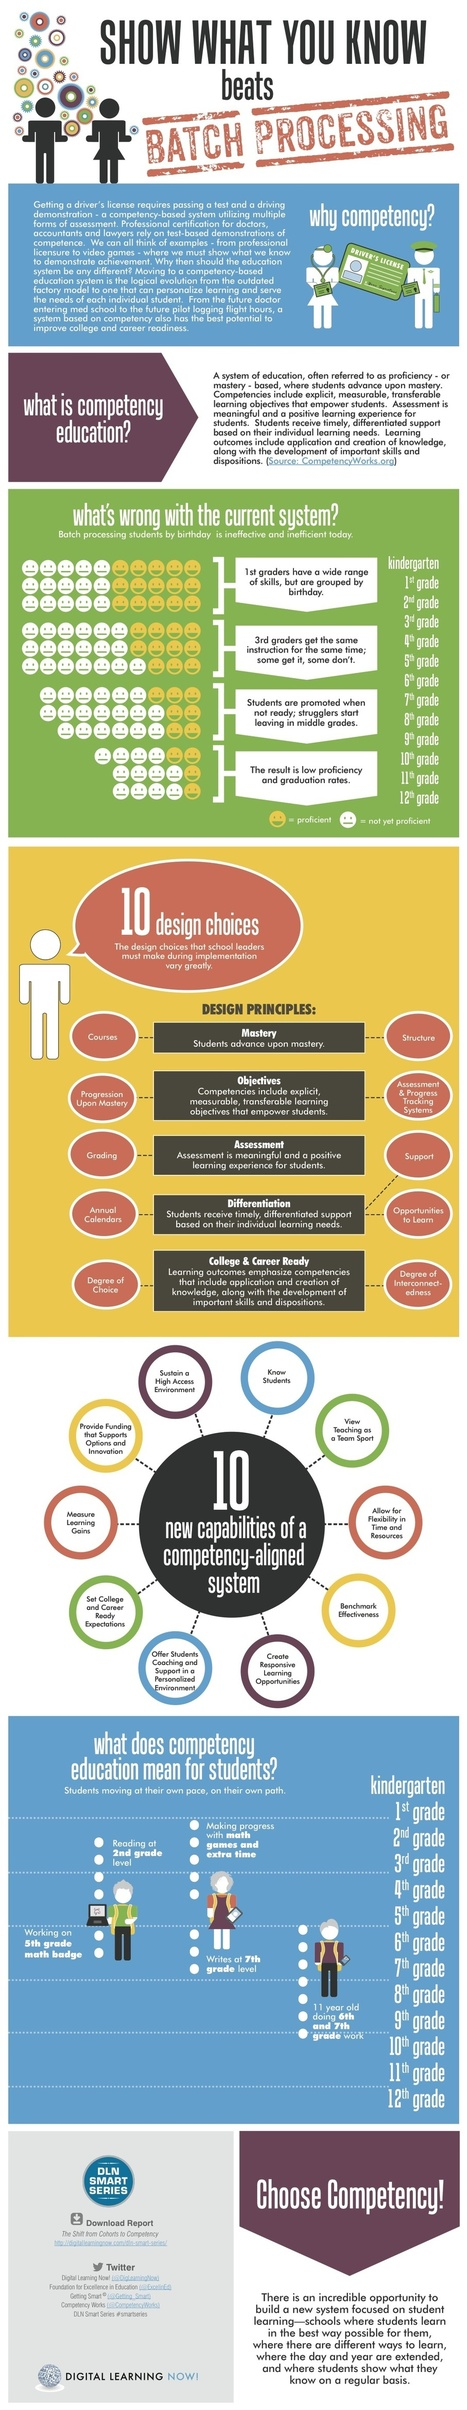 Competency-Education-Infographic | Wiki_Universe | Scoop.it